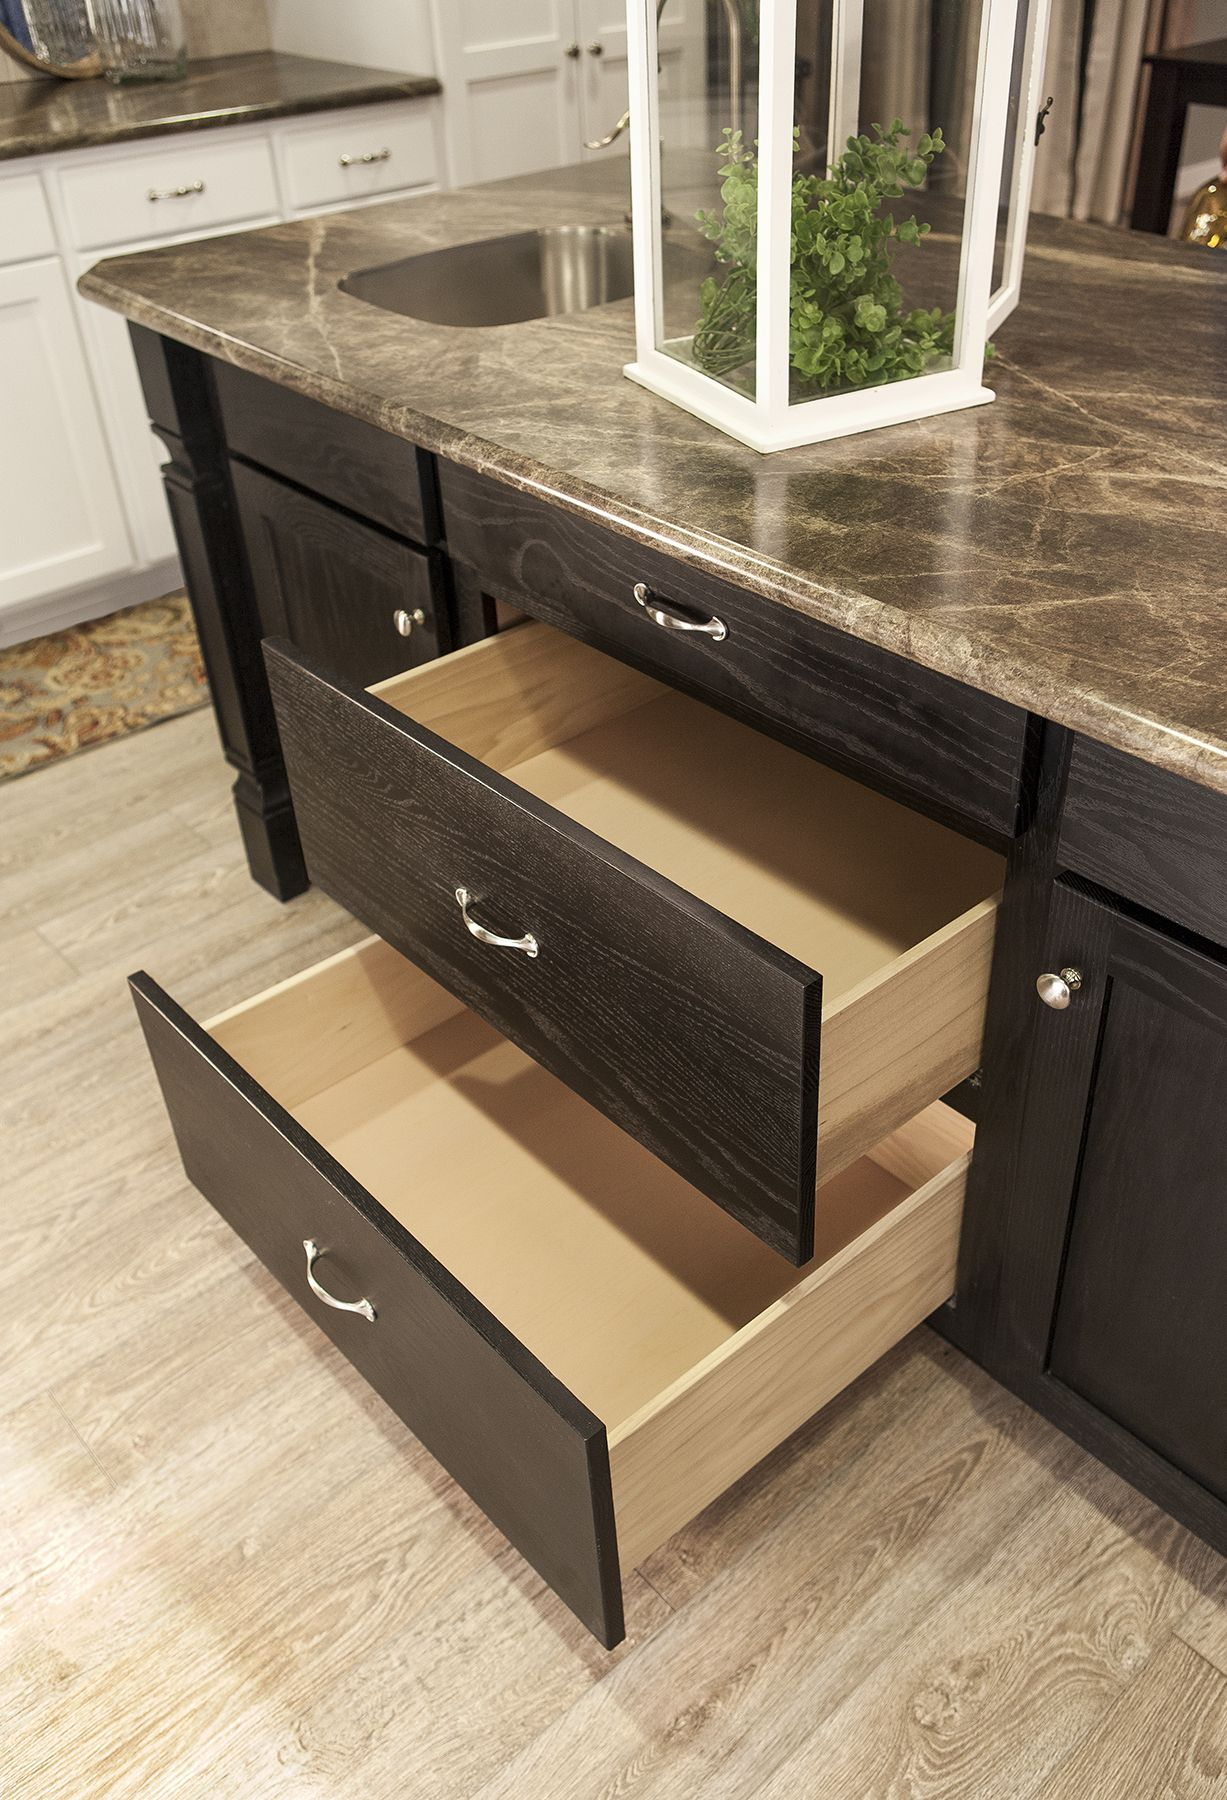 Pots Pans Drawers In Kitchen Island Espresso Kitchen Cabinets Kitchen Base Cabinets Cheap Kitchen Cabinets